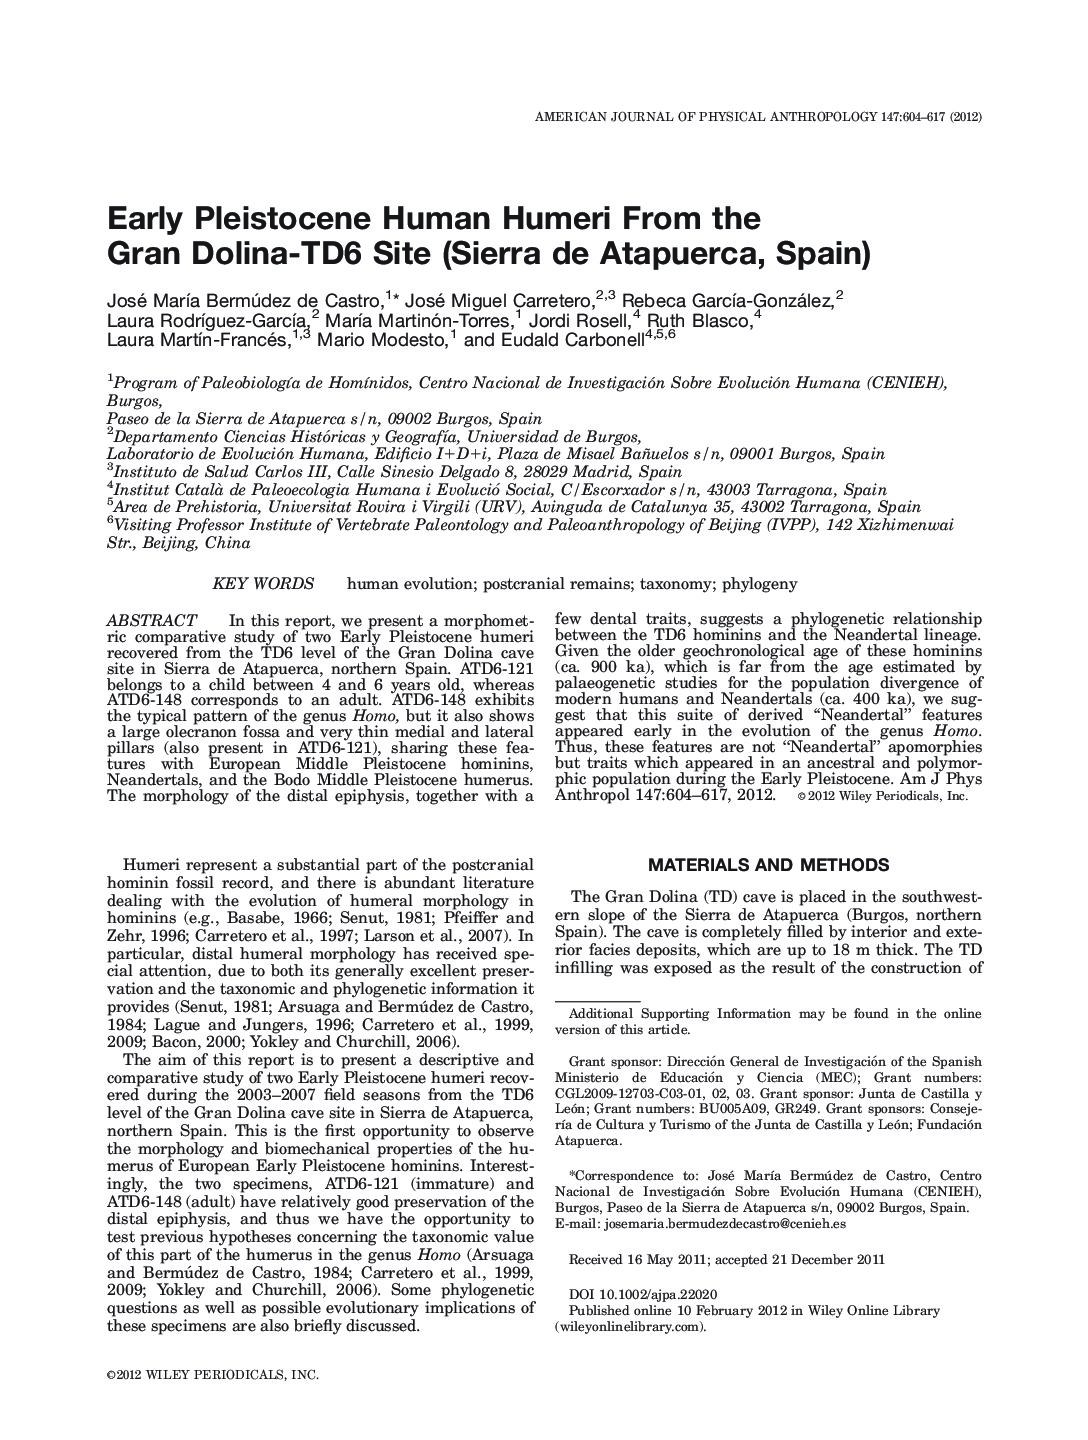 Early Pleistocene human humeri from the Gran Dolina-TD6 site (Sierra de Atapuerca, Spain)